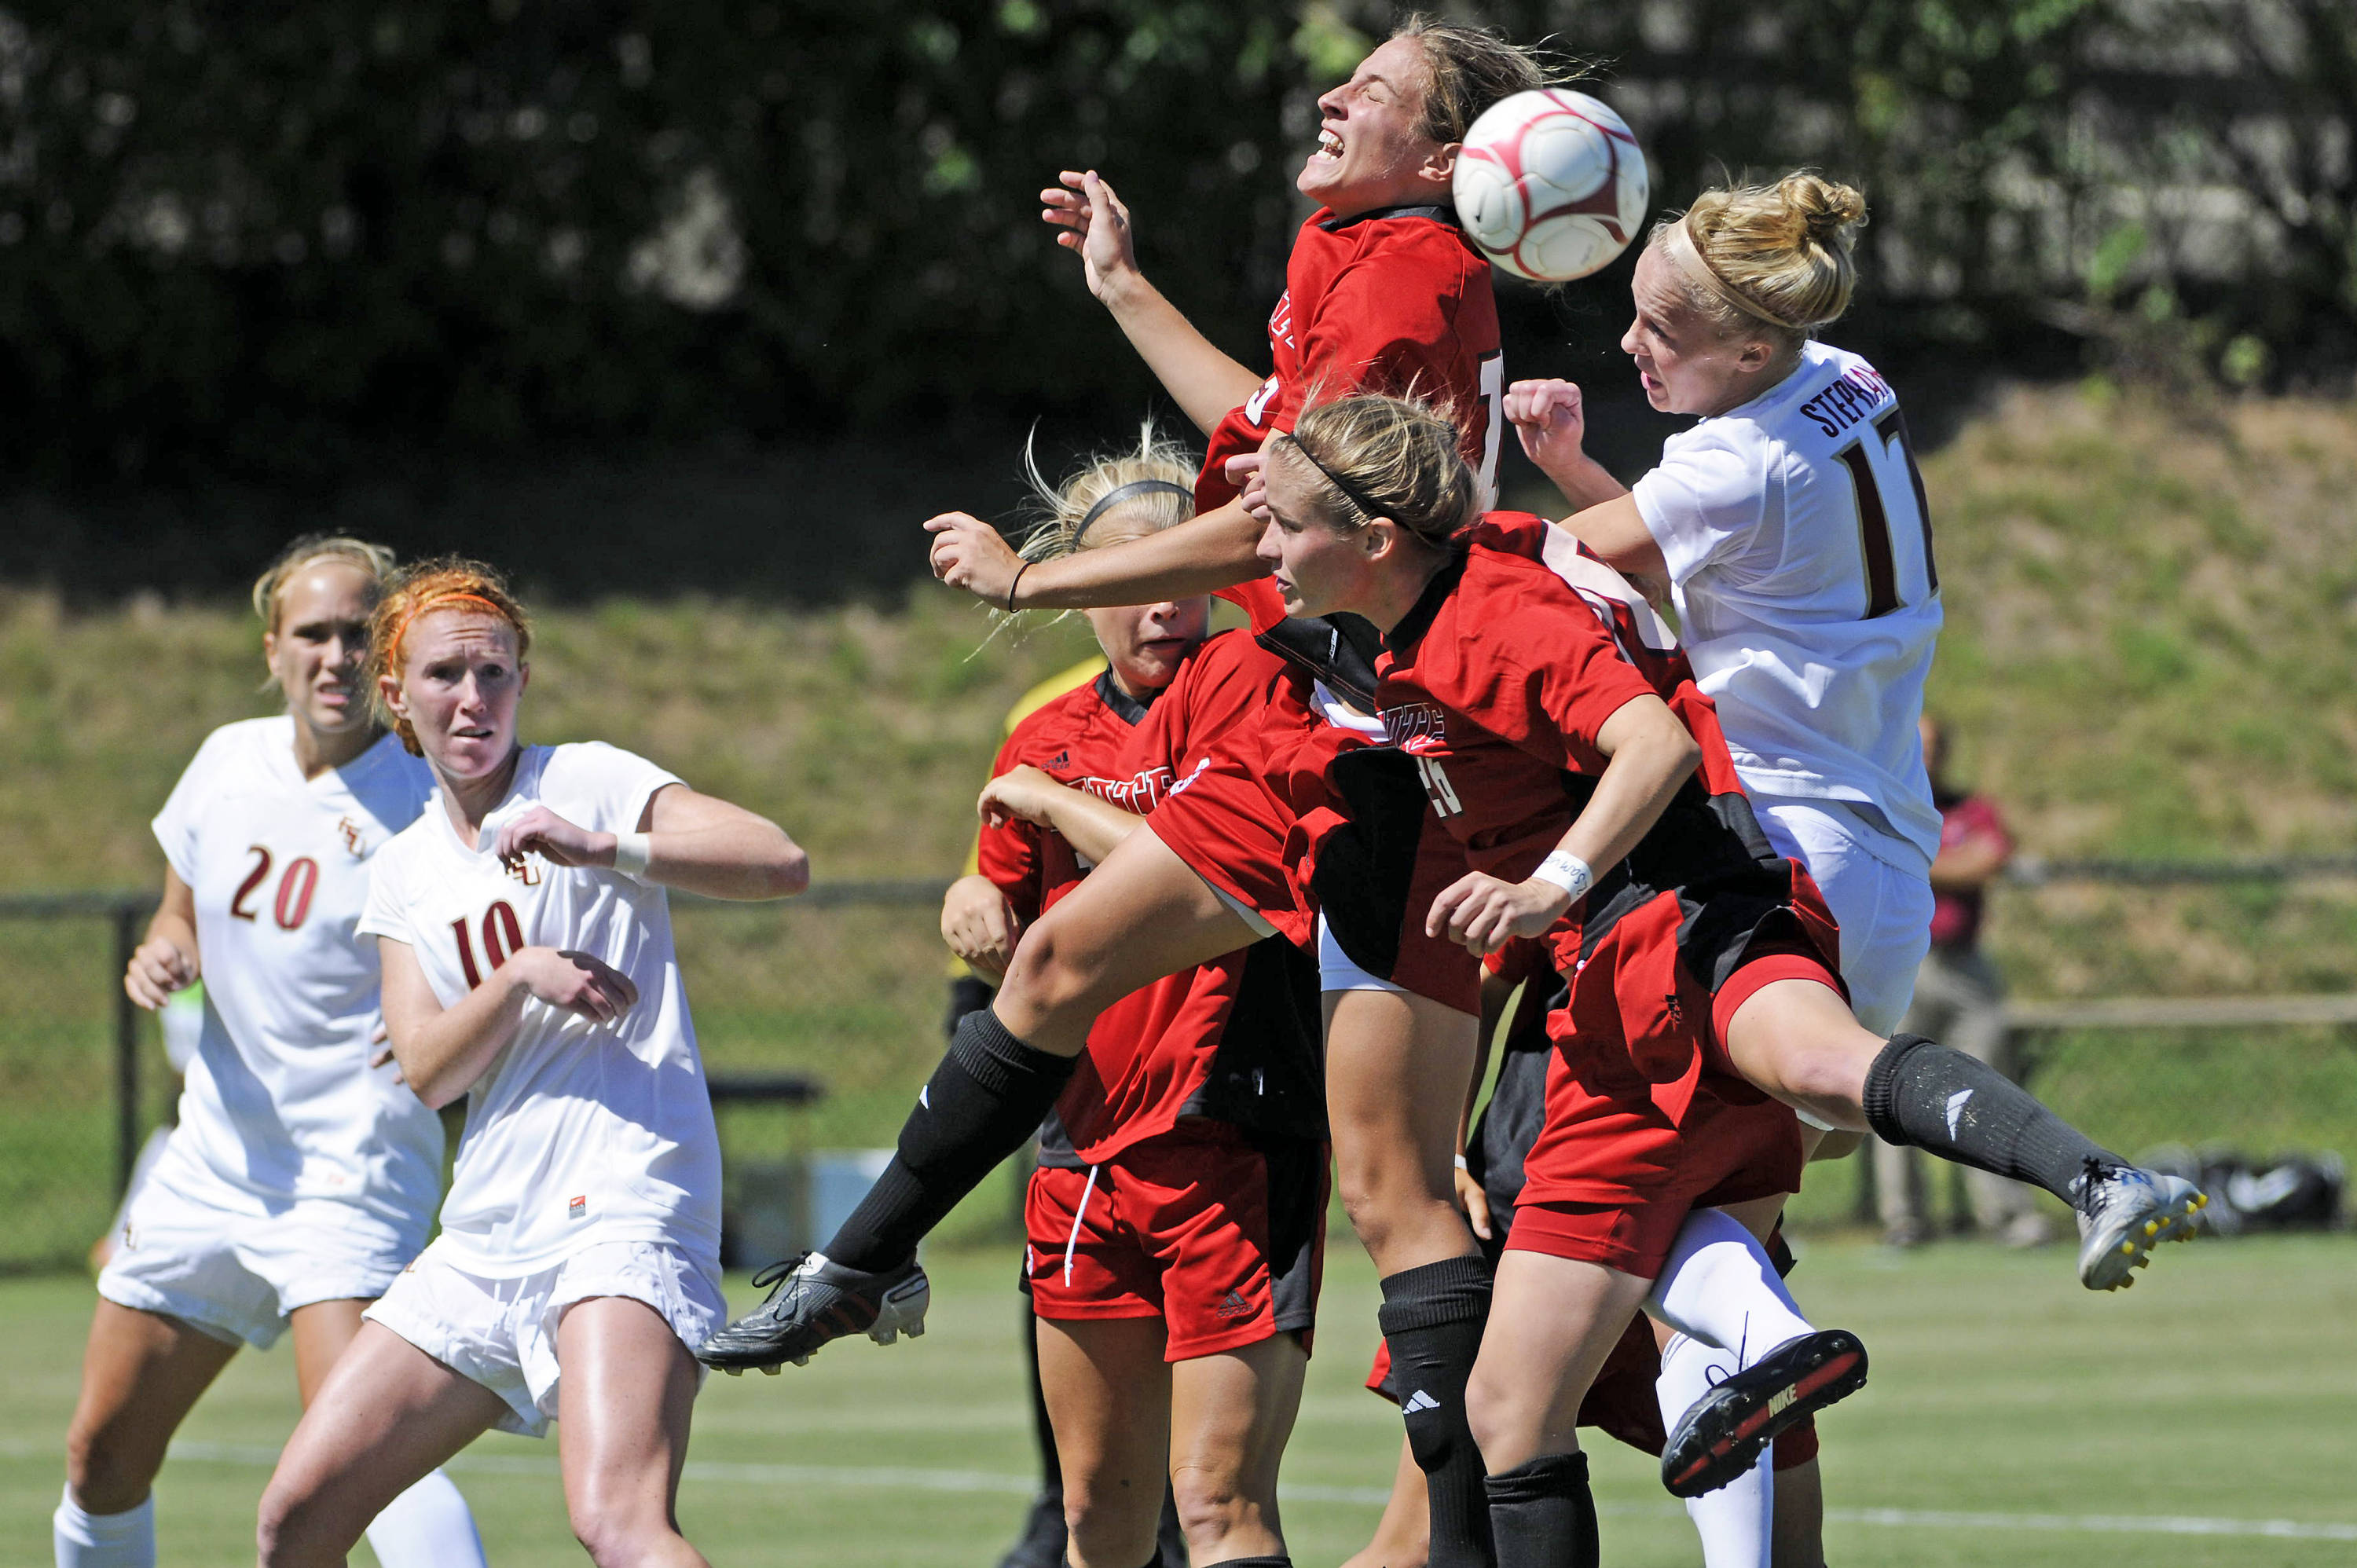 Ella Stephan goes up for a header against NC State.